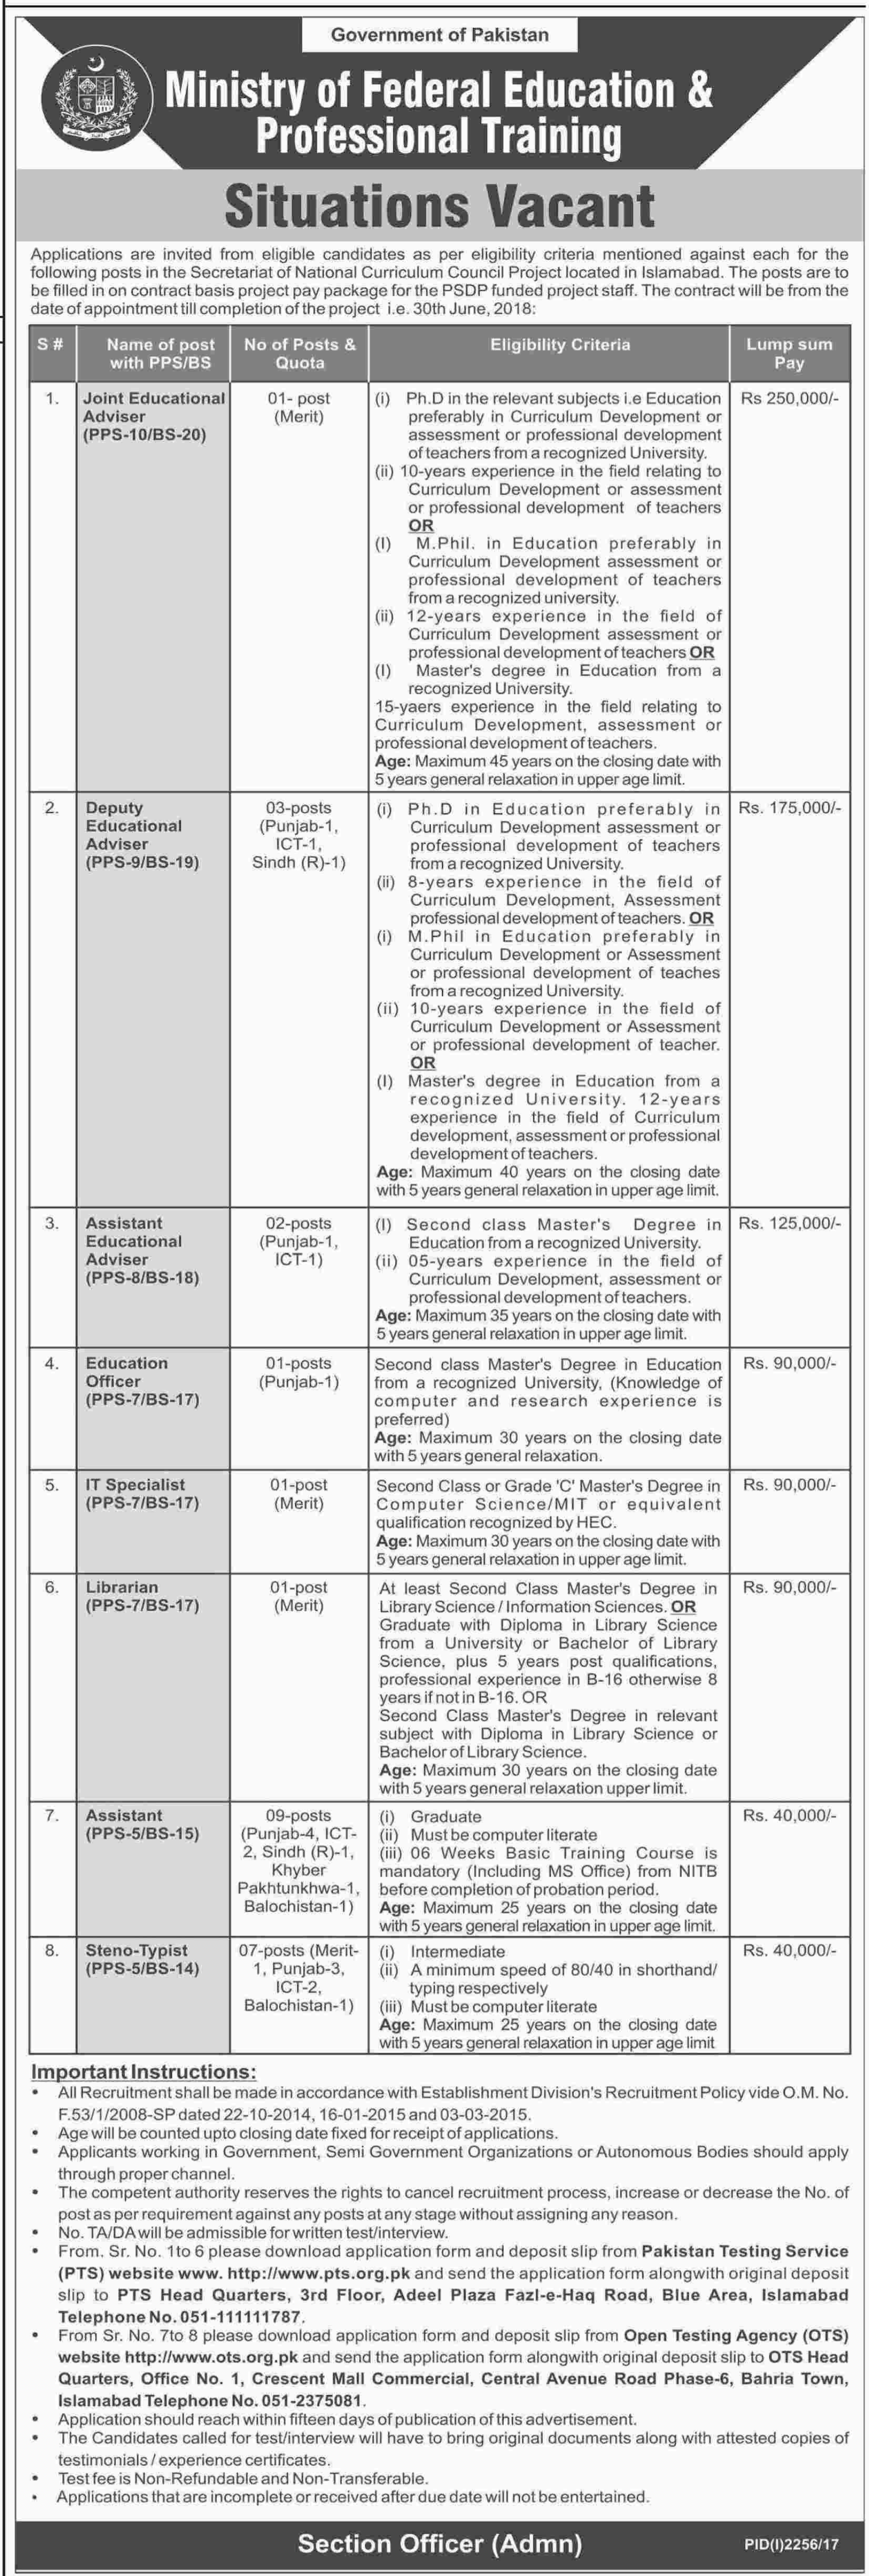 MFE Jobs Ministry of Federal Education 2017 PTS